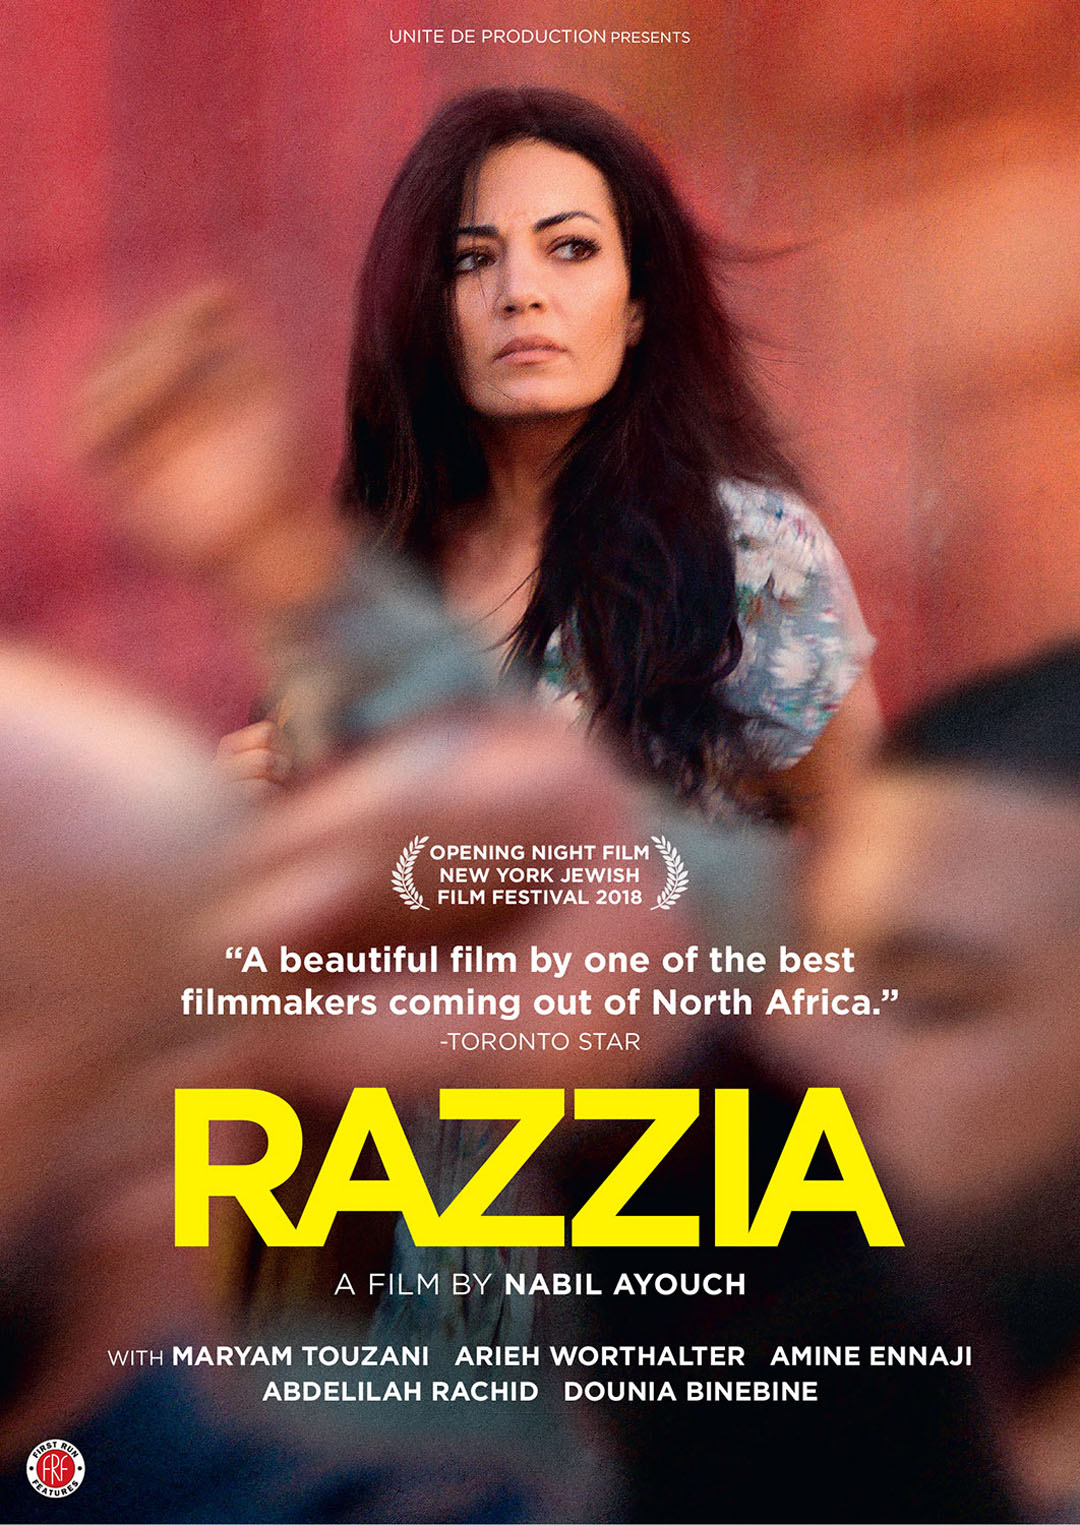 Razzia film poster, DVD cover art - distributed by First Run Features.